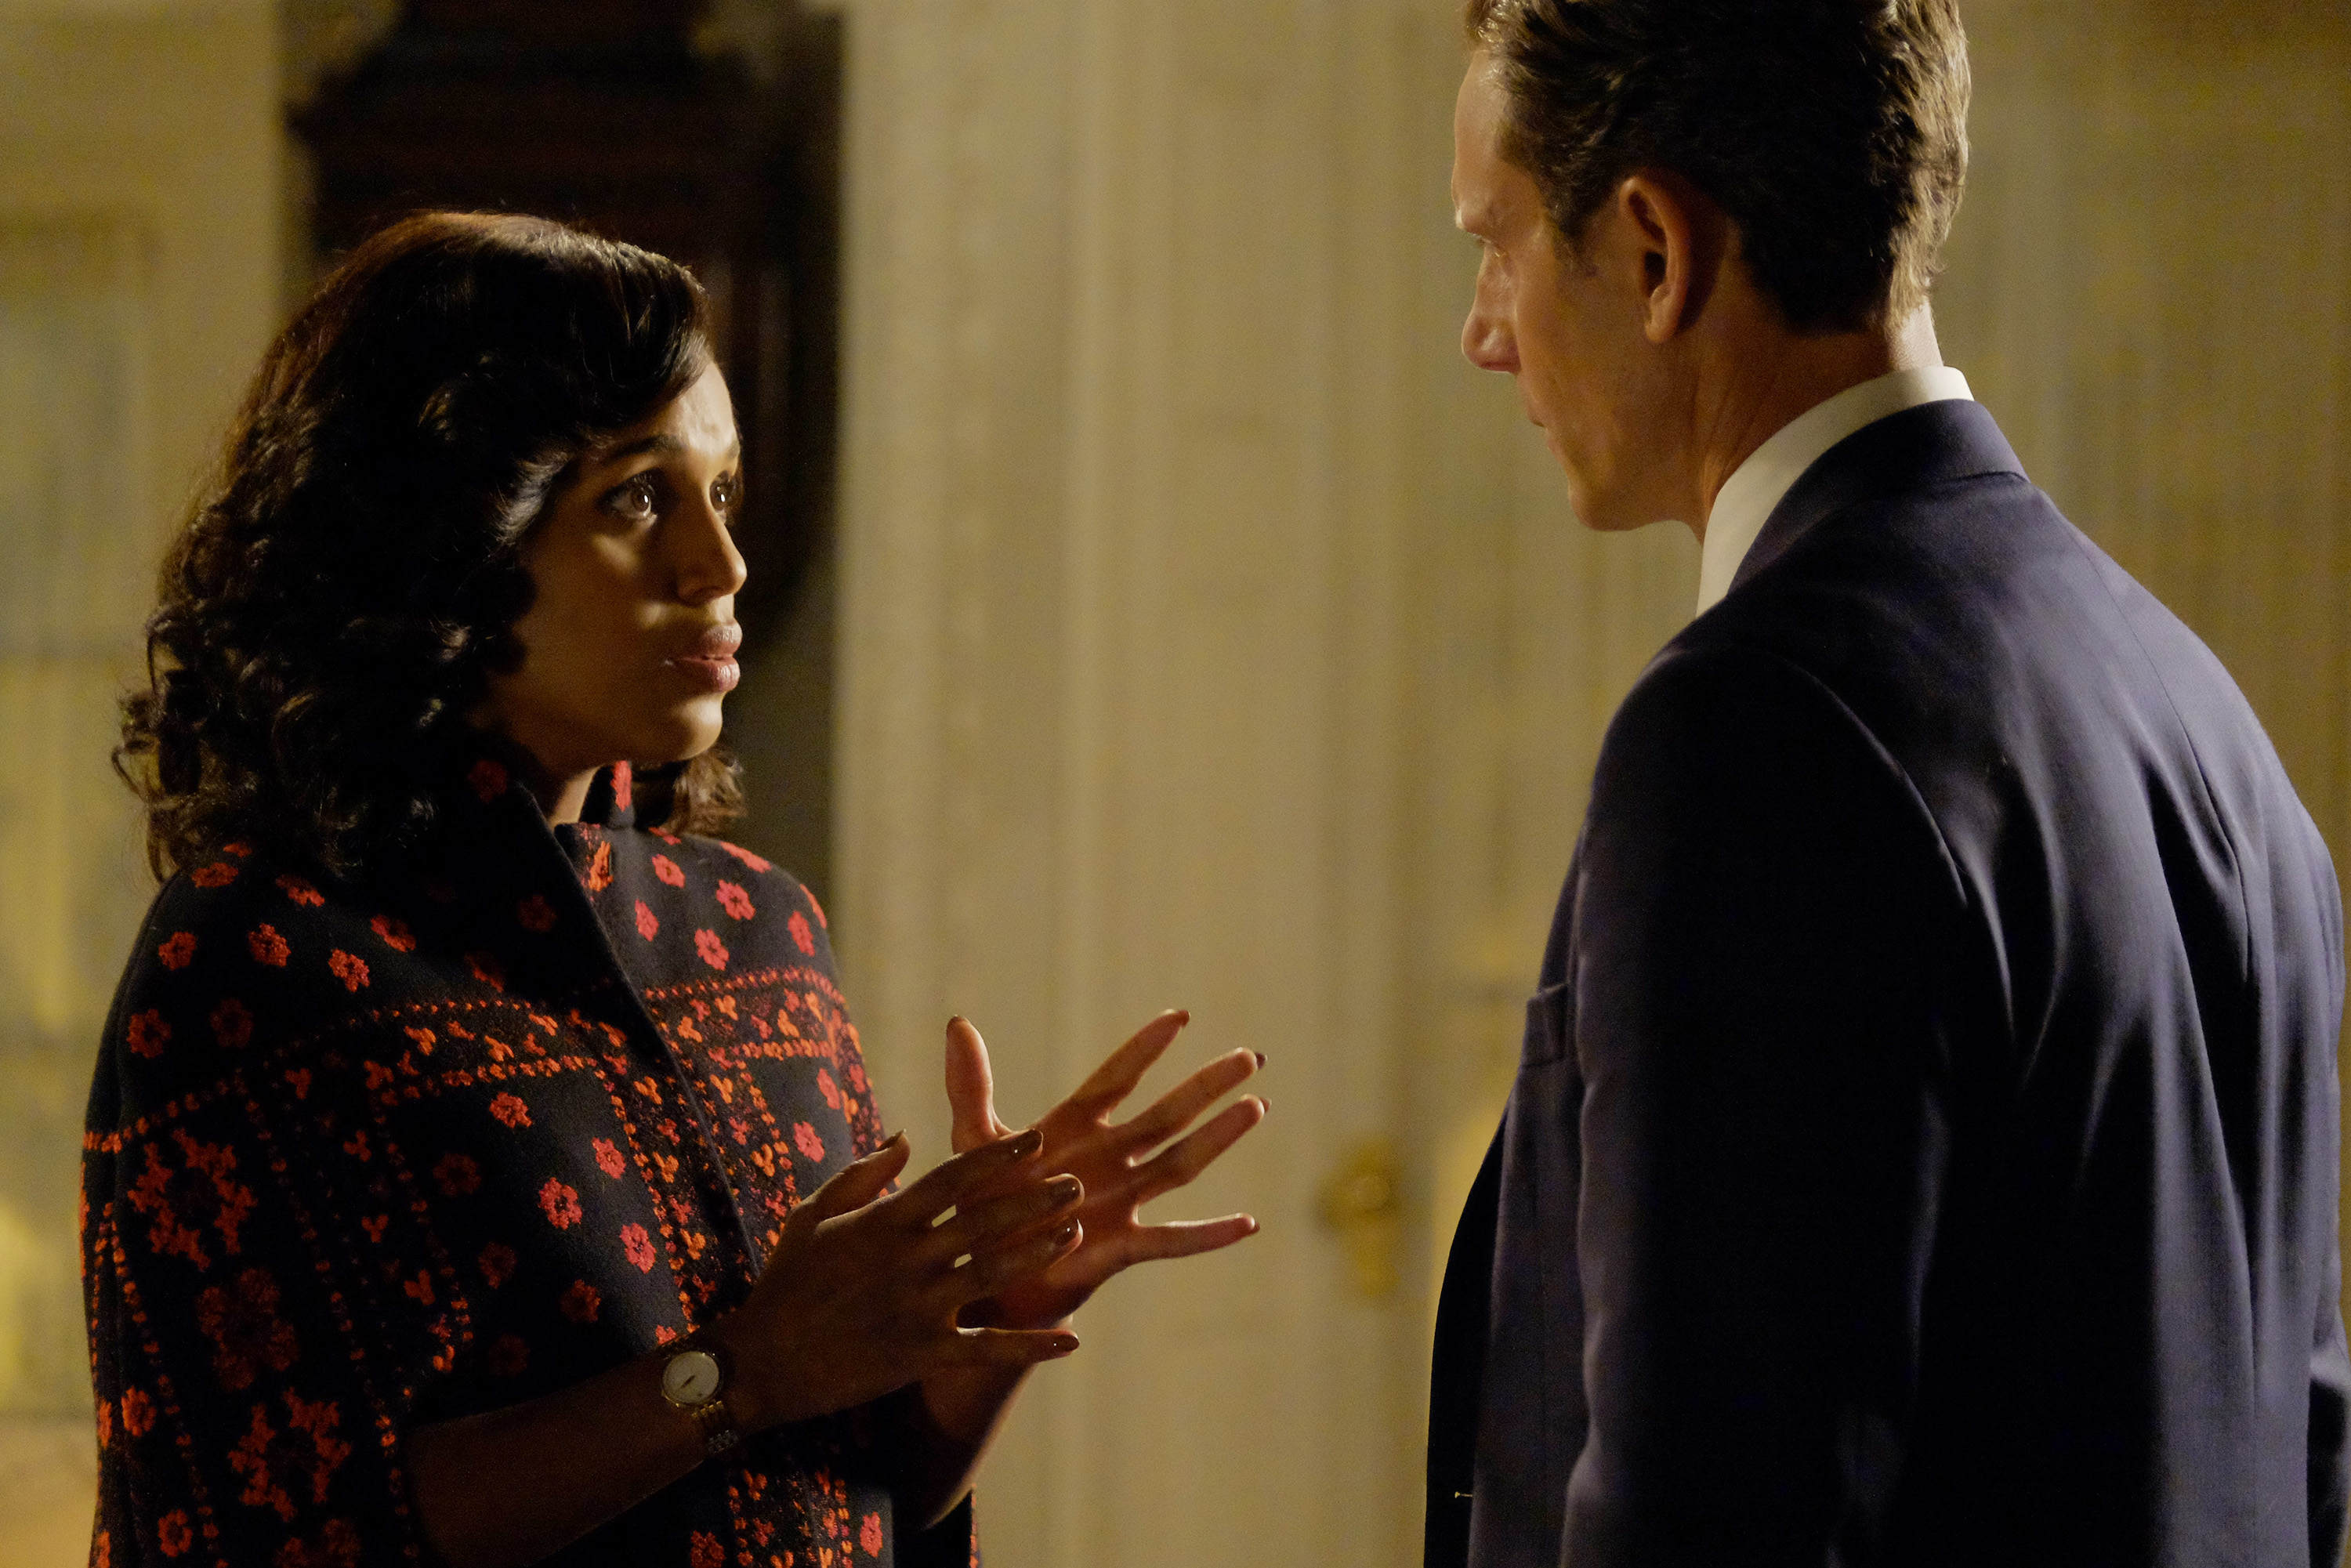 """SCANDAL - """"Survival of the Fittest"""" - The election results for the presidential race between Mellie Grant and Francisco Vargas are announced, and the shocking results lead to an explosive outcome, on the highly anticipated season premiere of """"Scandal,"""" airing on THURSDAY, JANUARY 26 (9:00-10:00 p.m. EST), on the ABC Television Network. (ABC/Tony Rivetti) KERRY WASHINGTON, TONY GOLDWYN"""